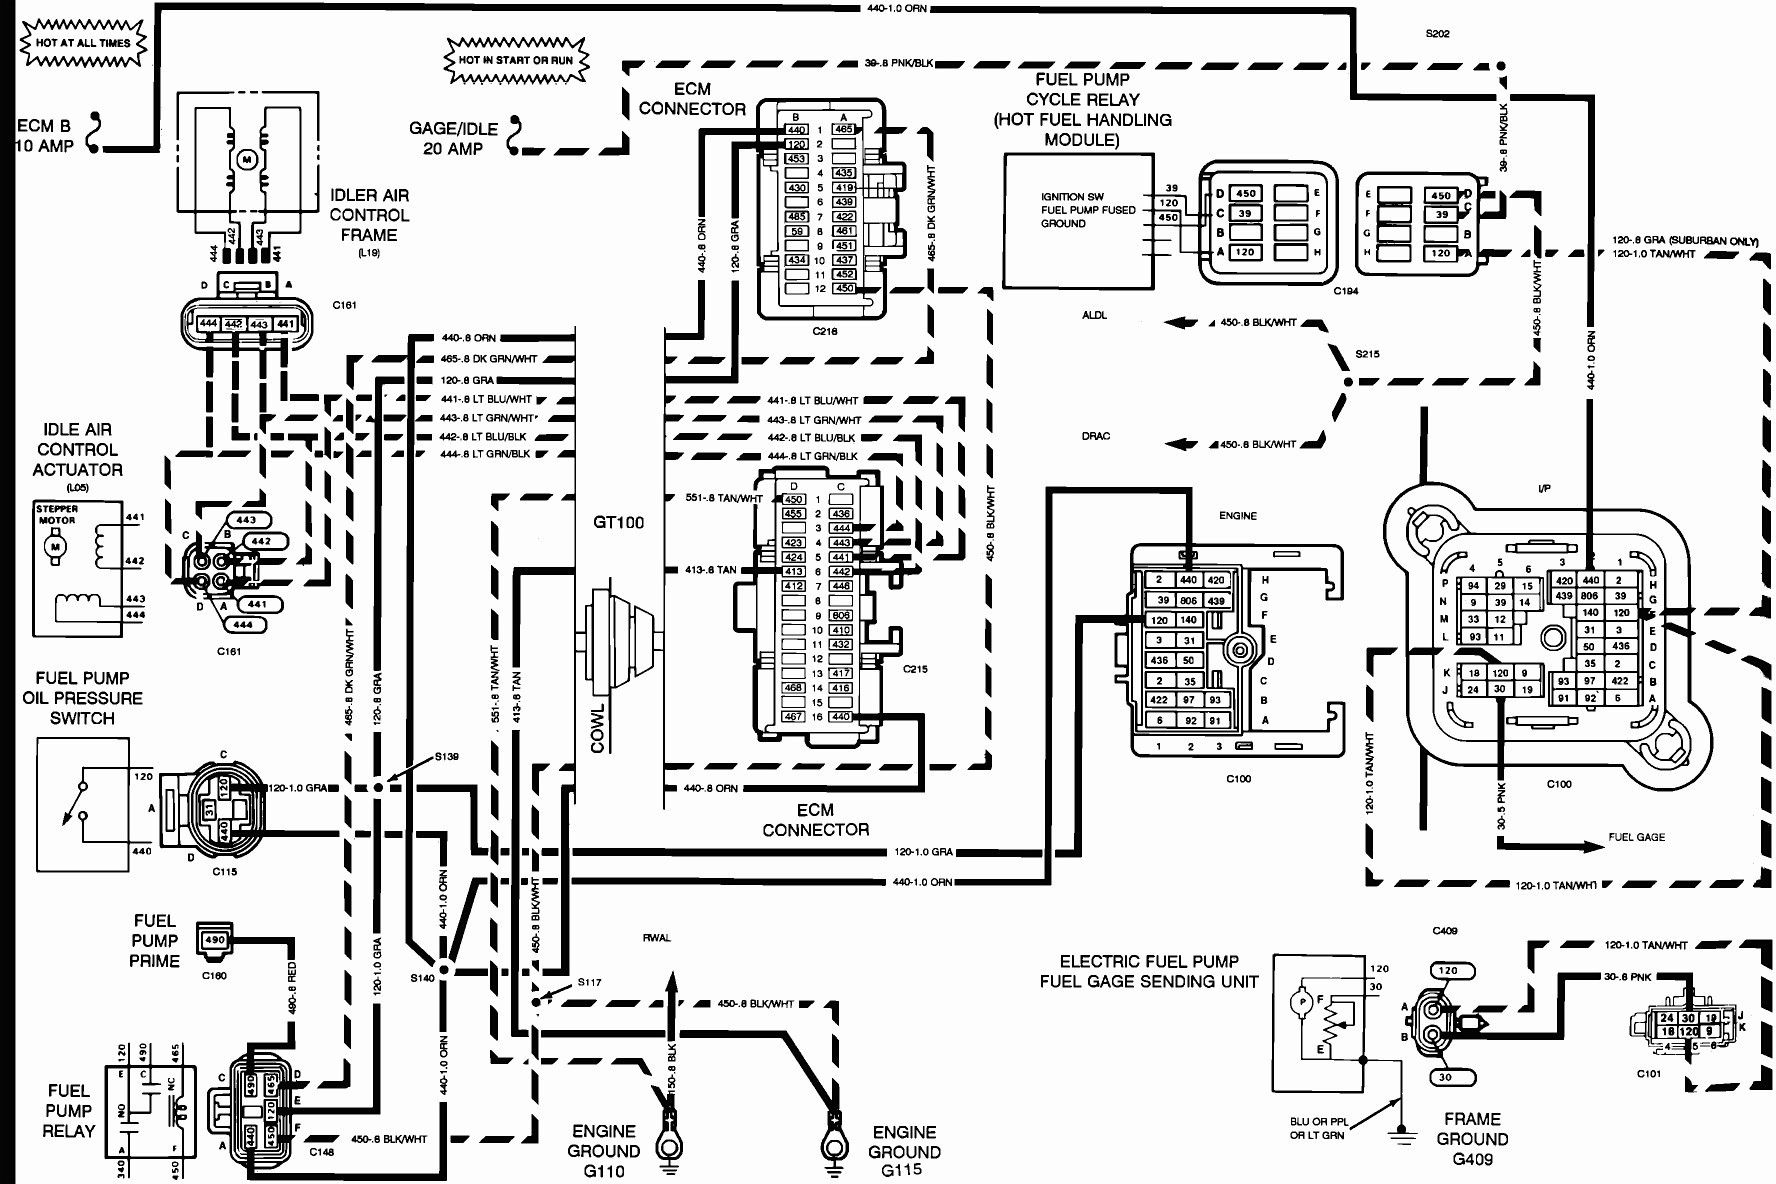 Winnebago Electrical Schematics. Parts. Wiring Diagram Images